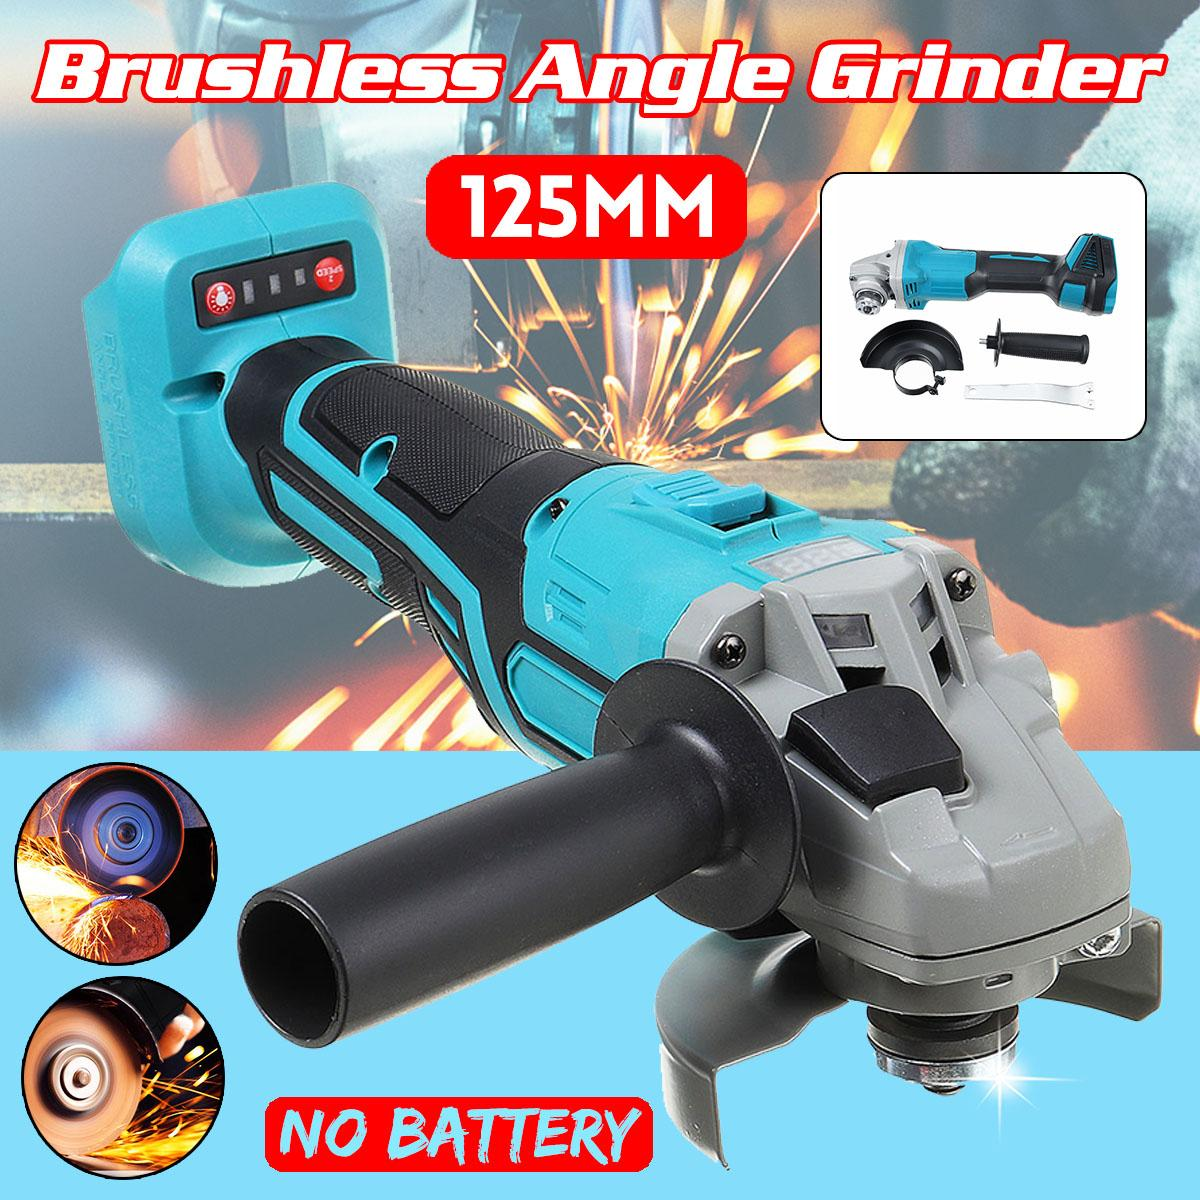 Digital 125mm Brushless Cordless Impact Angle Grinder No Battery DIY Power Tool Cutting Machine Polisher For 18V Makita Battery